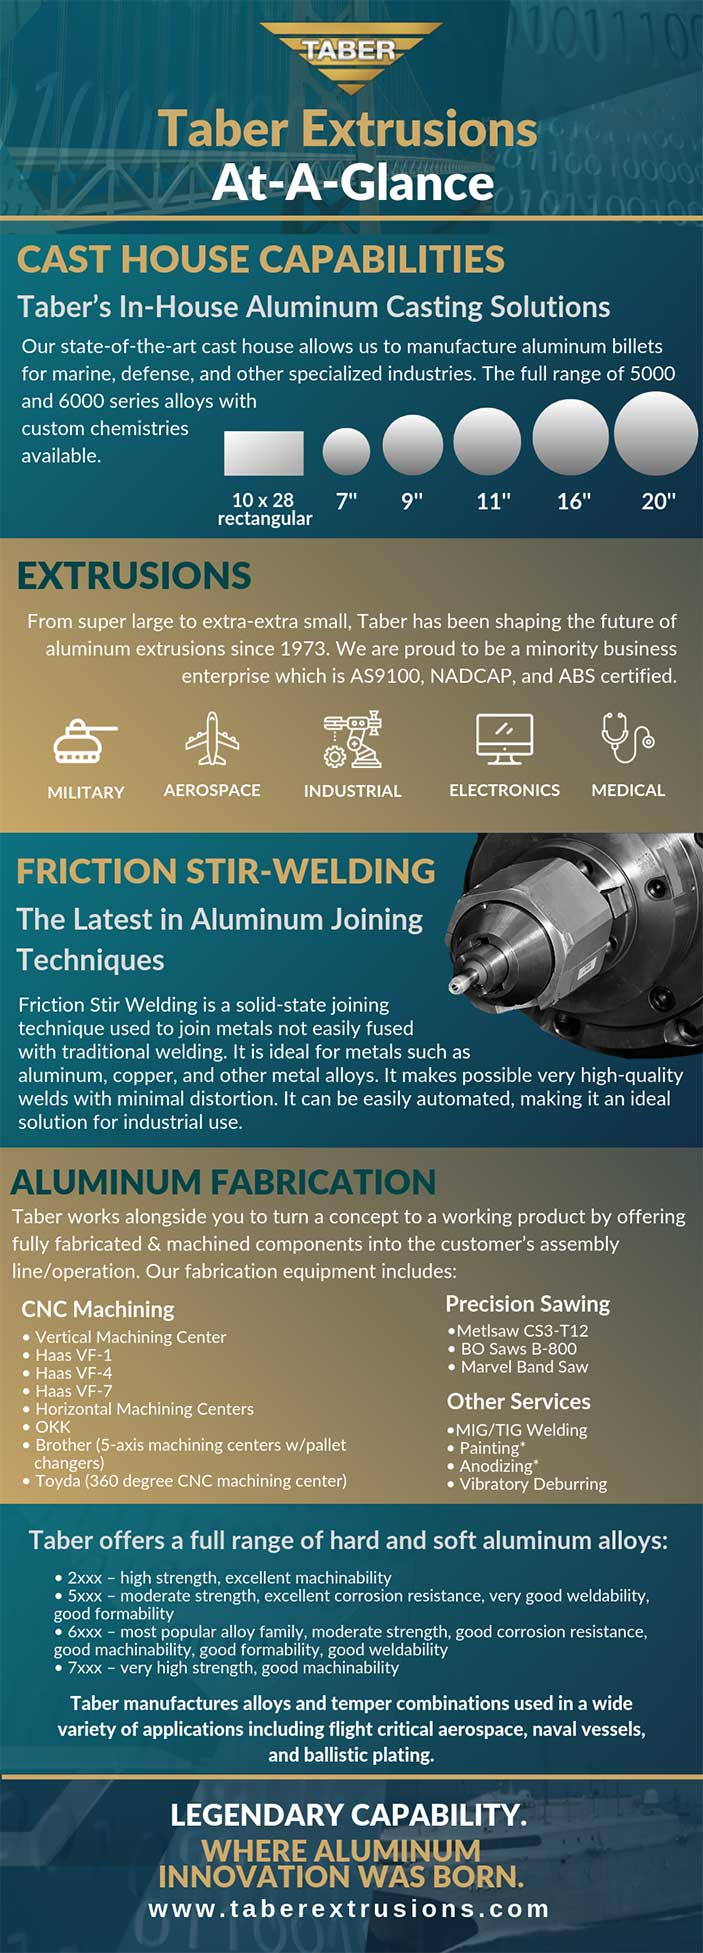 Aluminum Extrusion Leader Taber At-A-Glance Infographic